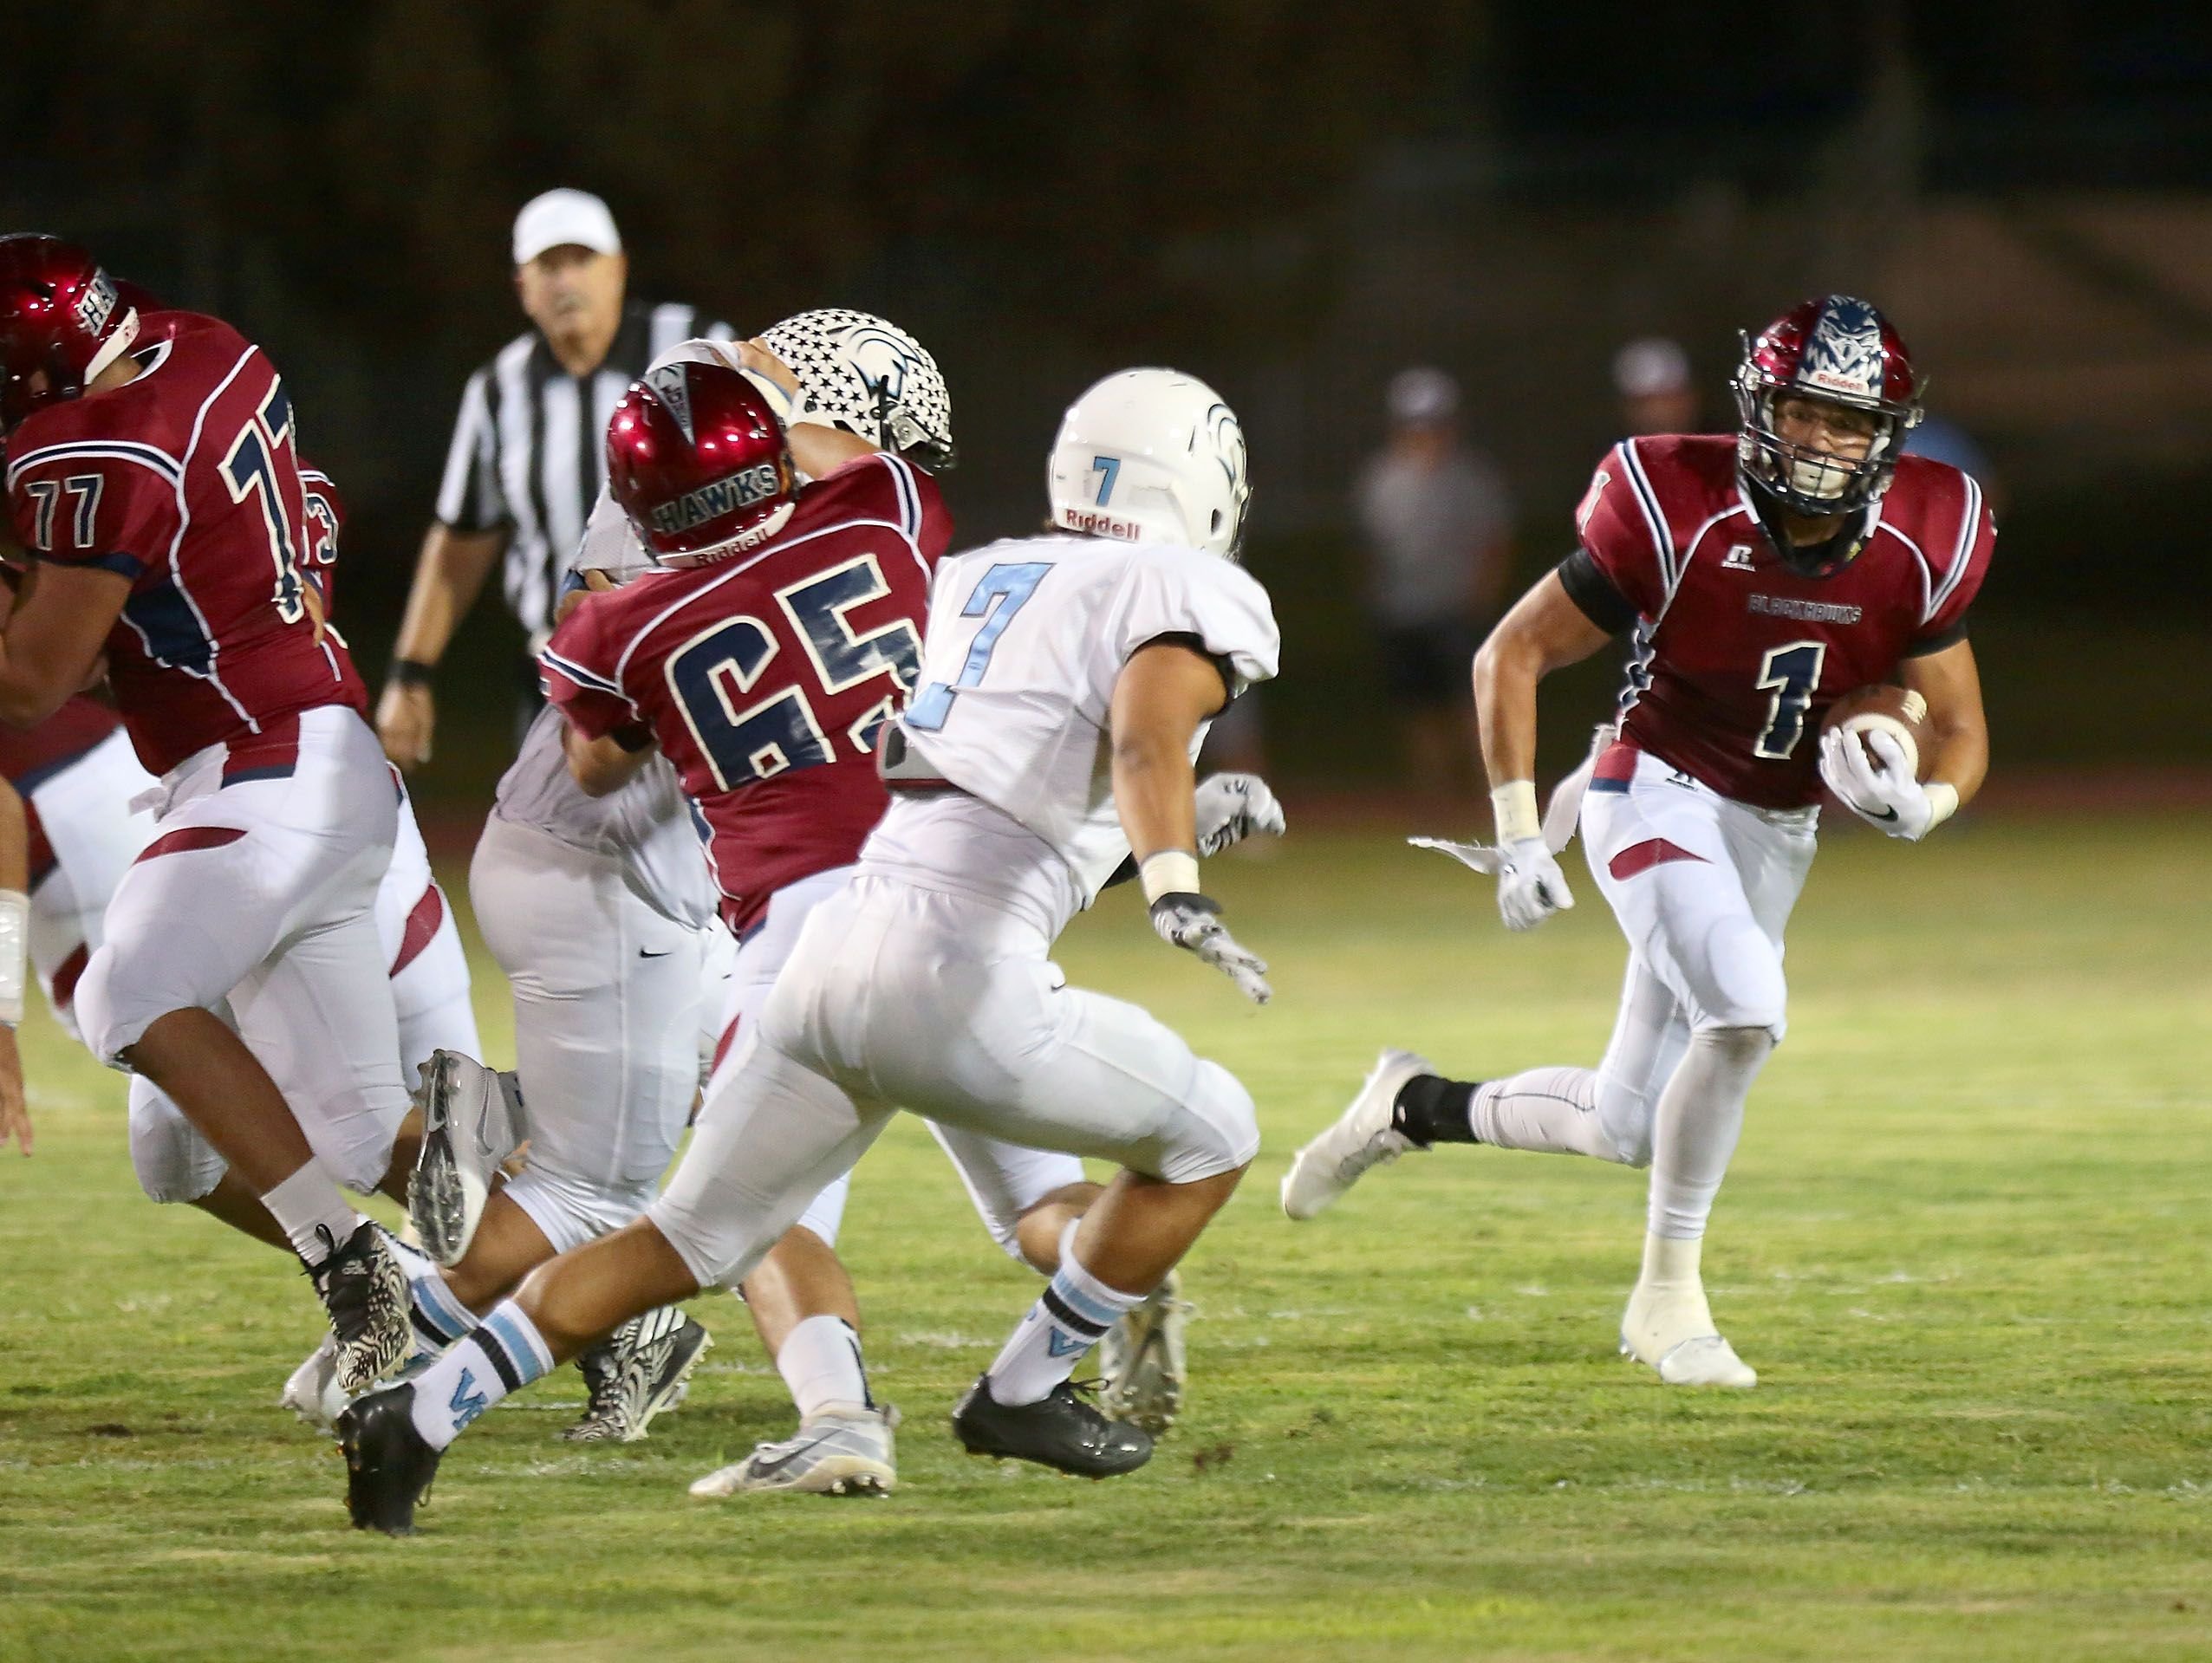 La Quinta running back Benji Cordova carries the ball early in the game before he was injured against Villa Park, September 2, 2016.